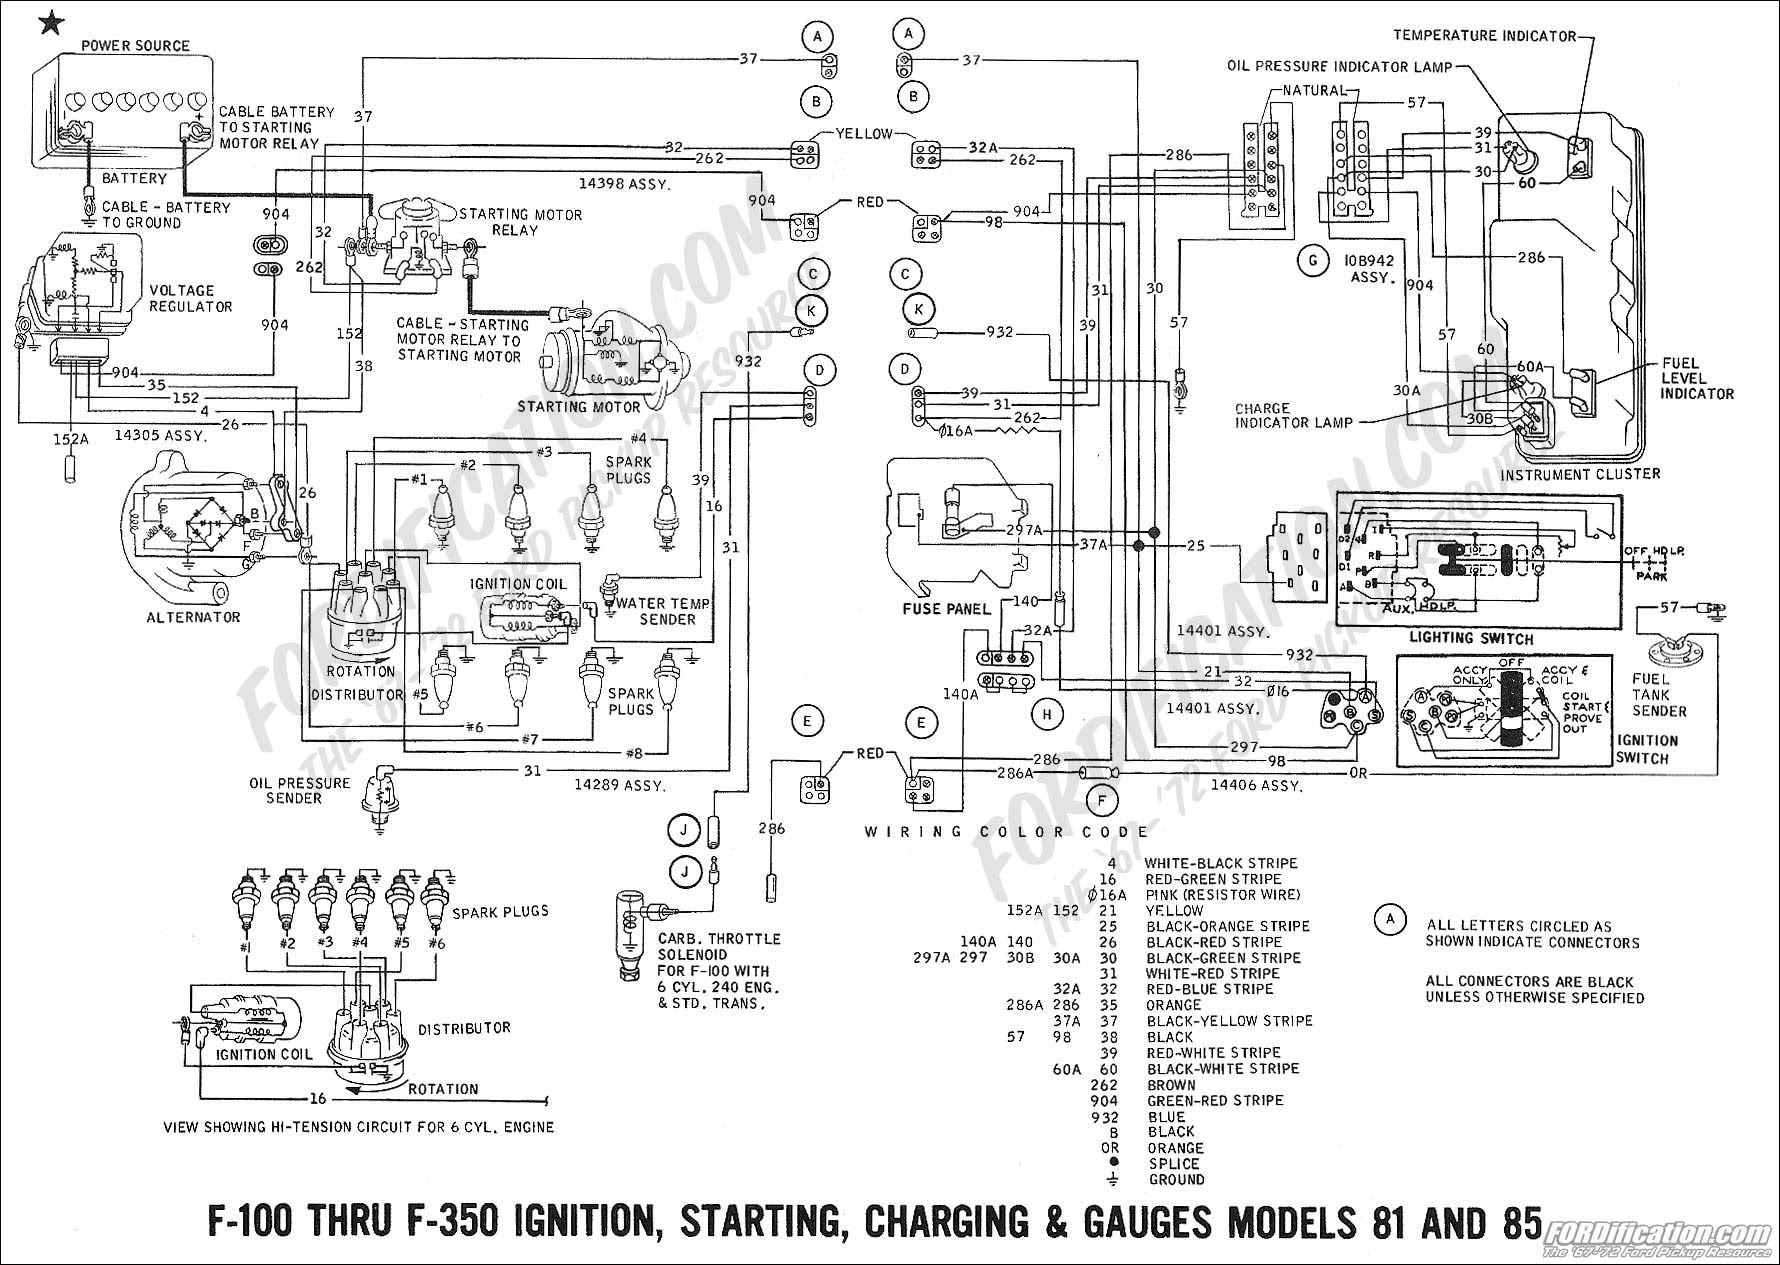 1969 Ford F250 Wiring Diagram Wiring Diagram Balance Balance Zaafran It